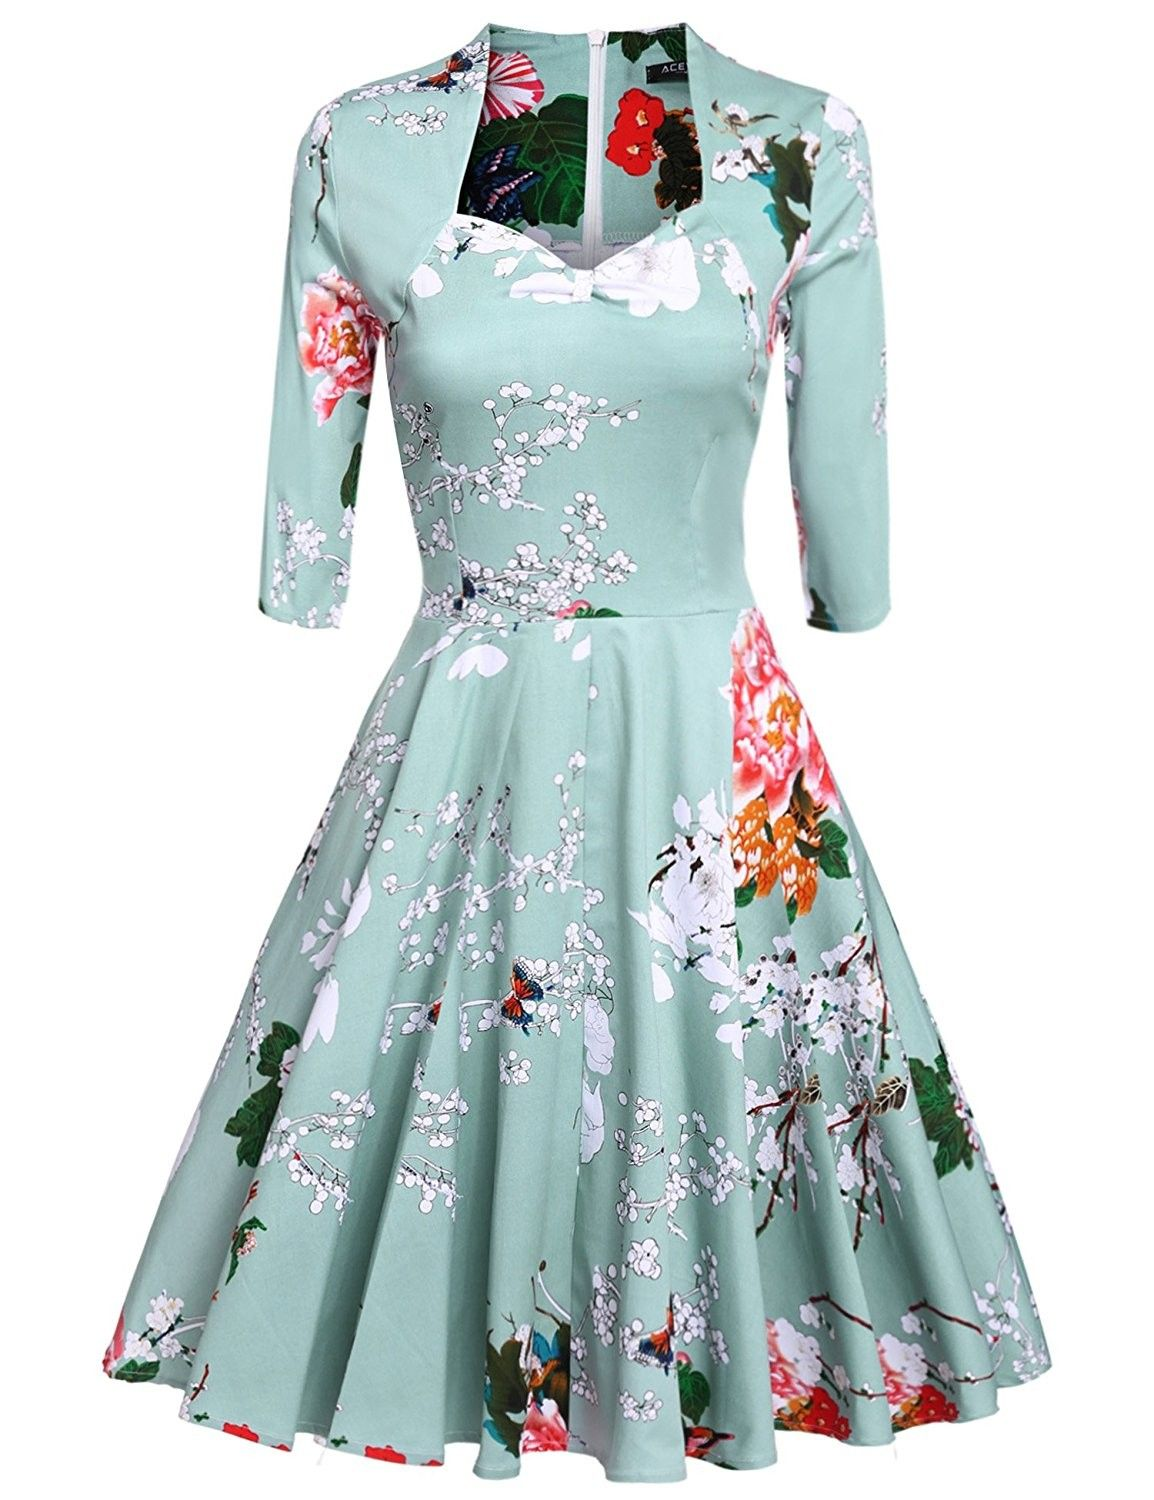 Women S Vintage 1950 S Floral 3 4 Sleeve Garden Party Picnic Dress Cocktail Dress Green C012ma19i1u Casual Dress Outfits Dresses Casual Dresses [ 1500 x 1154 Pixel ]